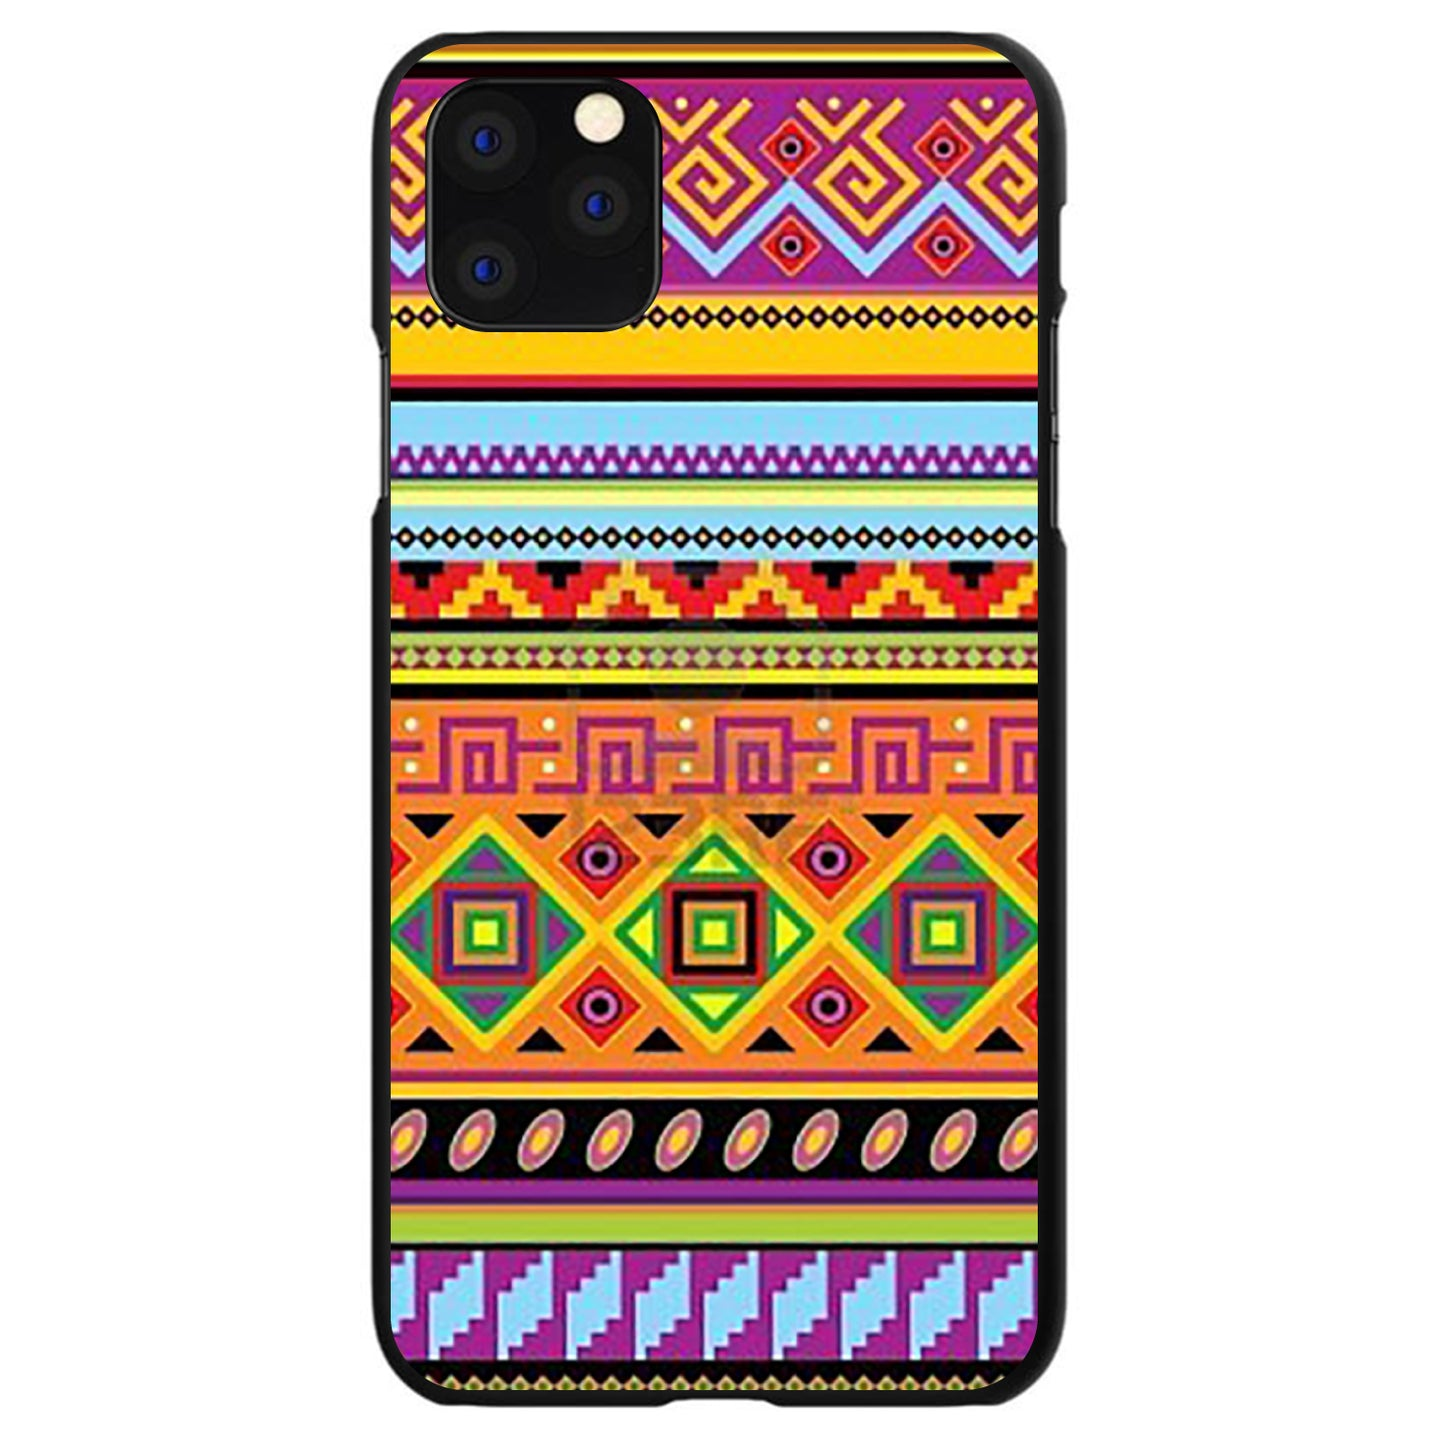 DistinctInk® Hard Plastic Snap-On Case for Apple iPhone - Blue Orange Purple Tribal Print